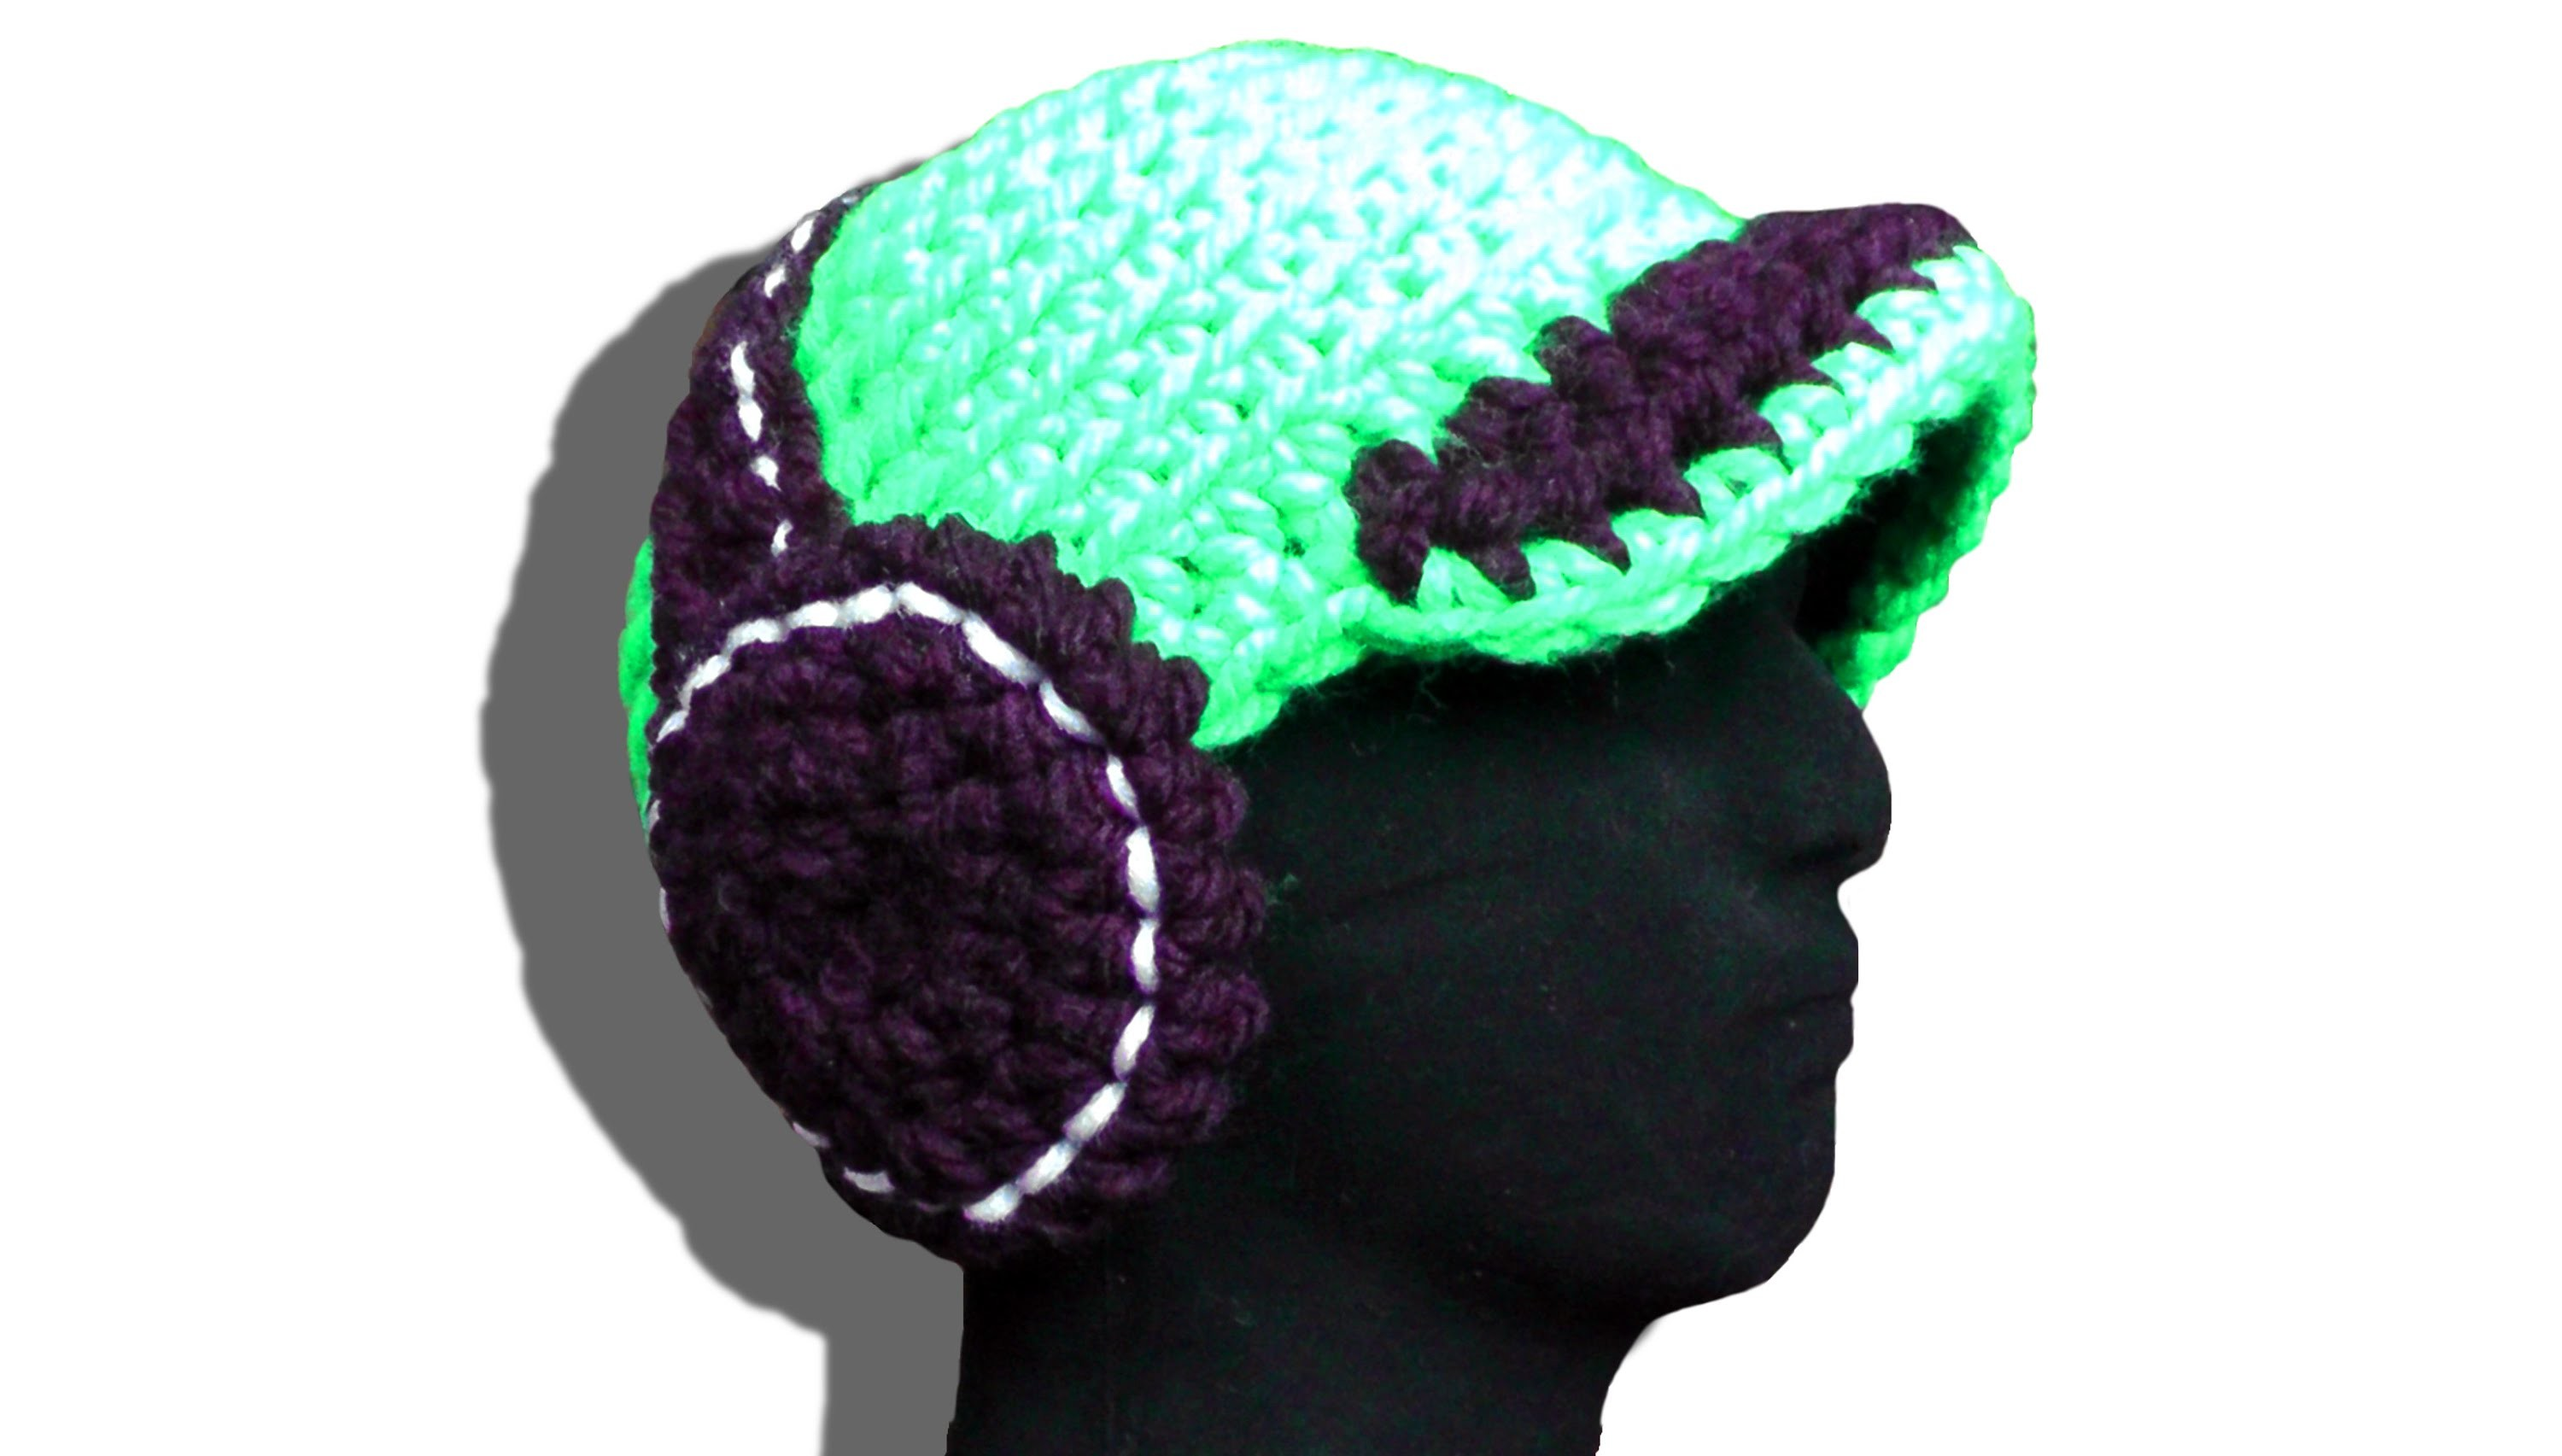 Amigurumi Headphones : Headphones hat phones crochet pattern - ? Woolpedia, My ...